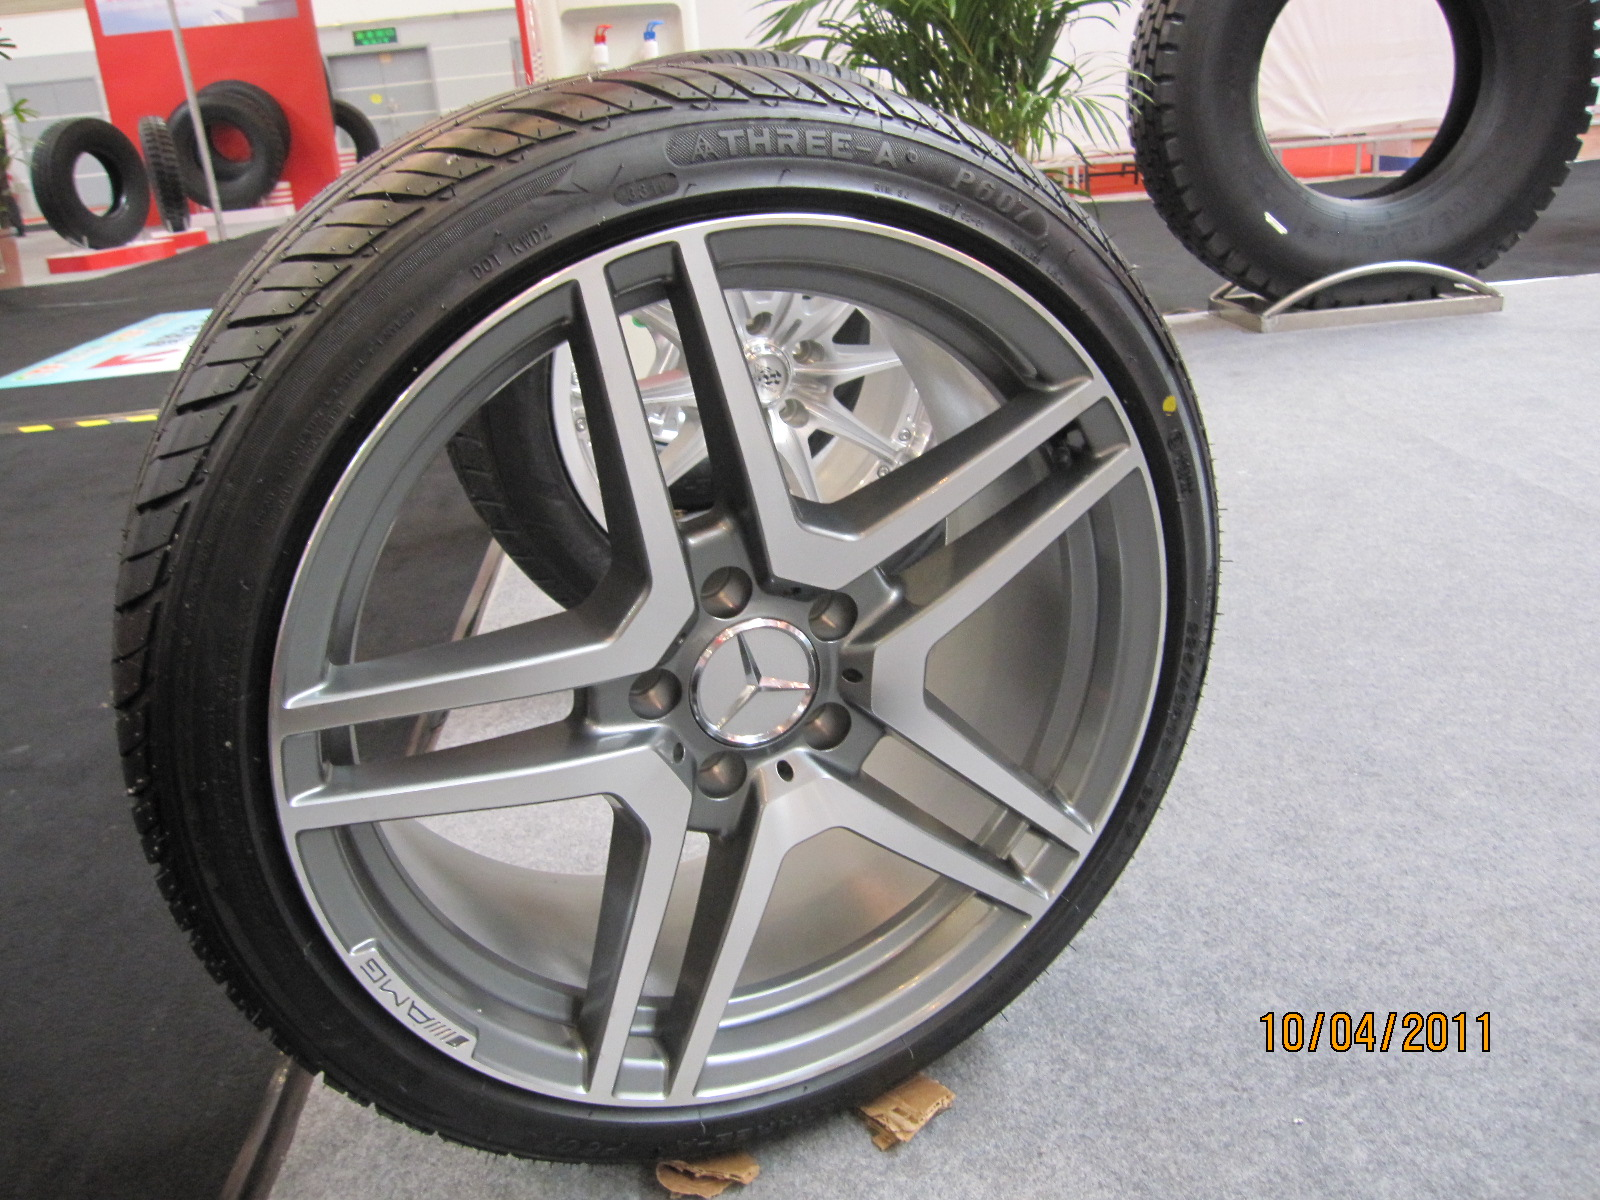 205/60R15 Rapid and Three-a Brand Car Tires